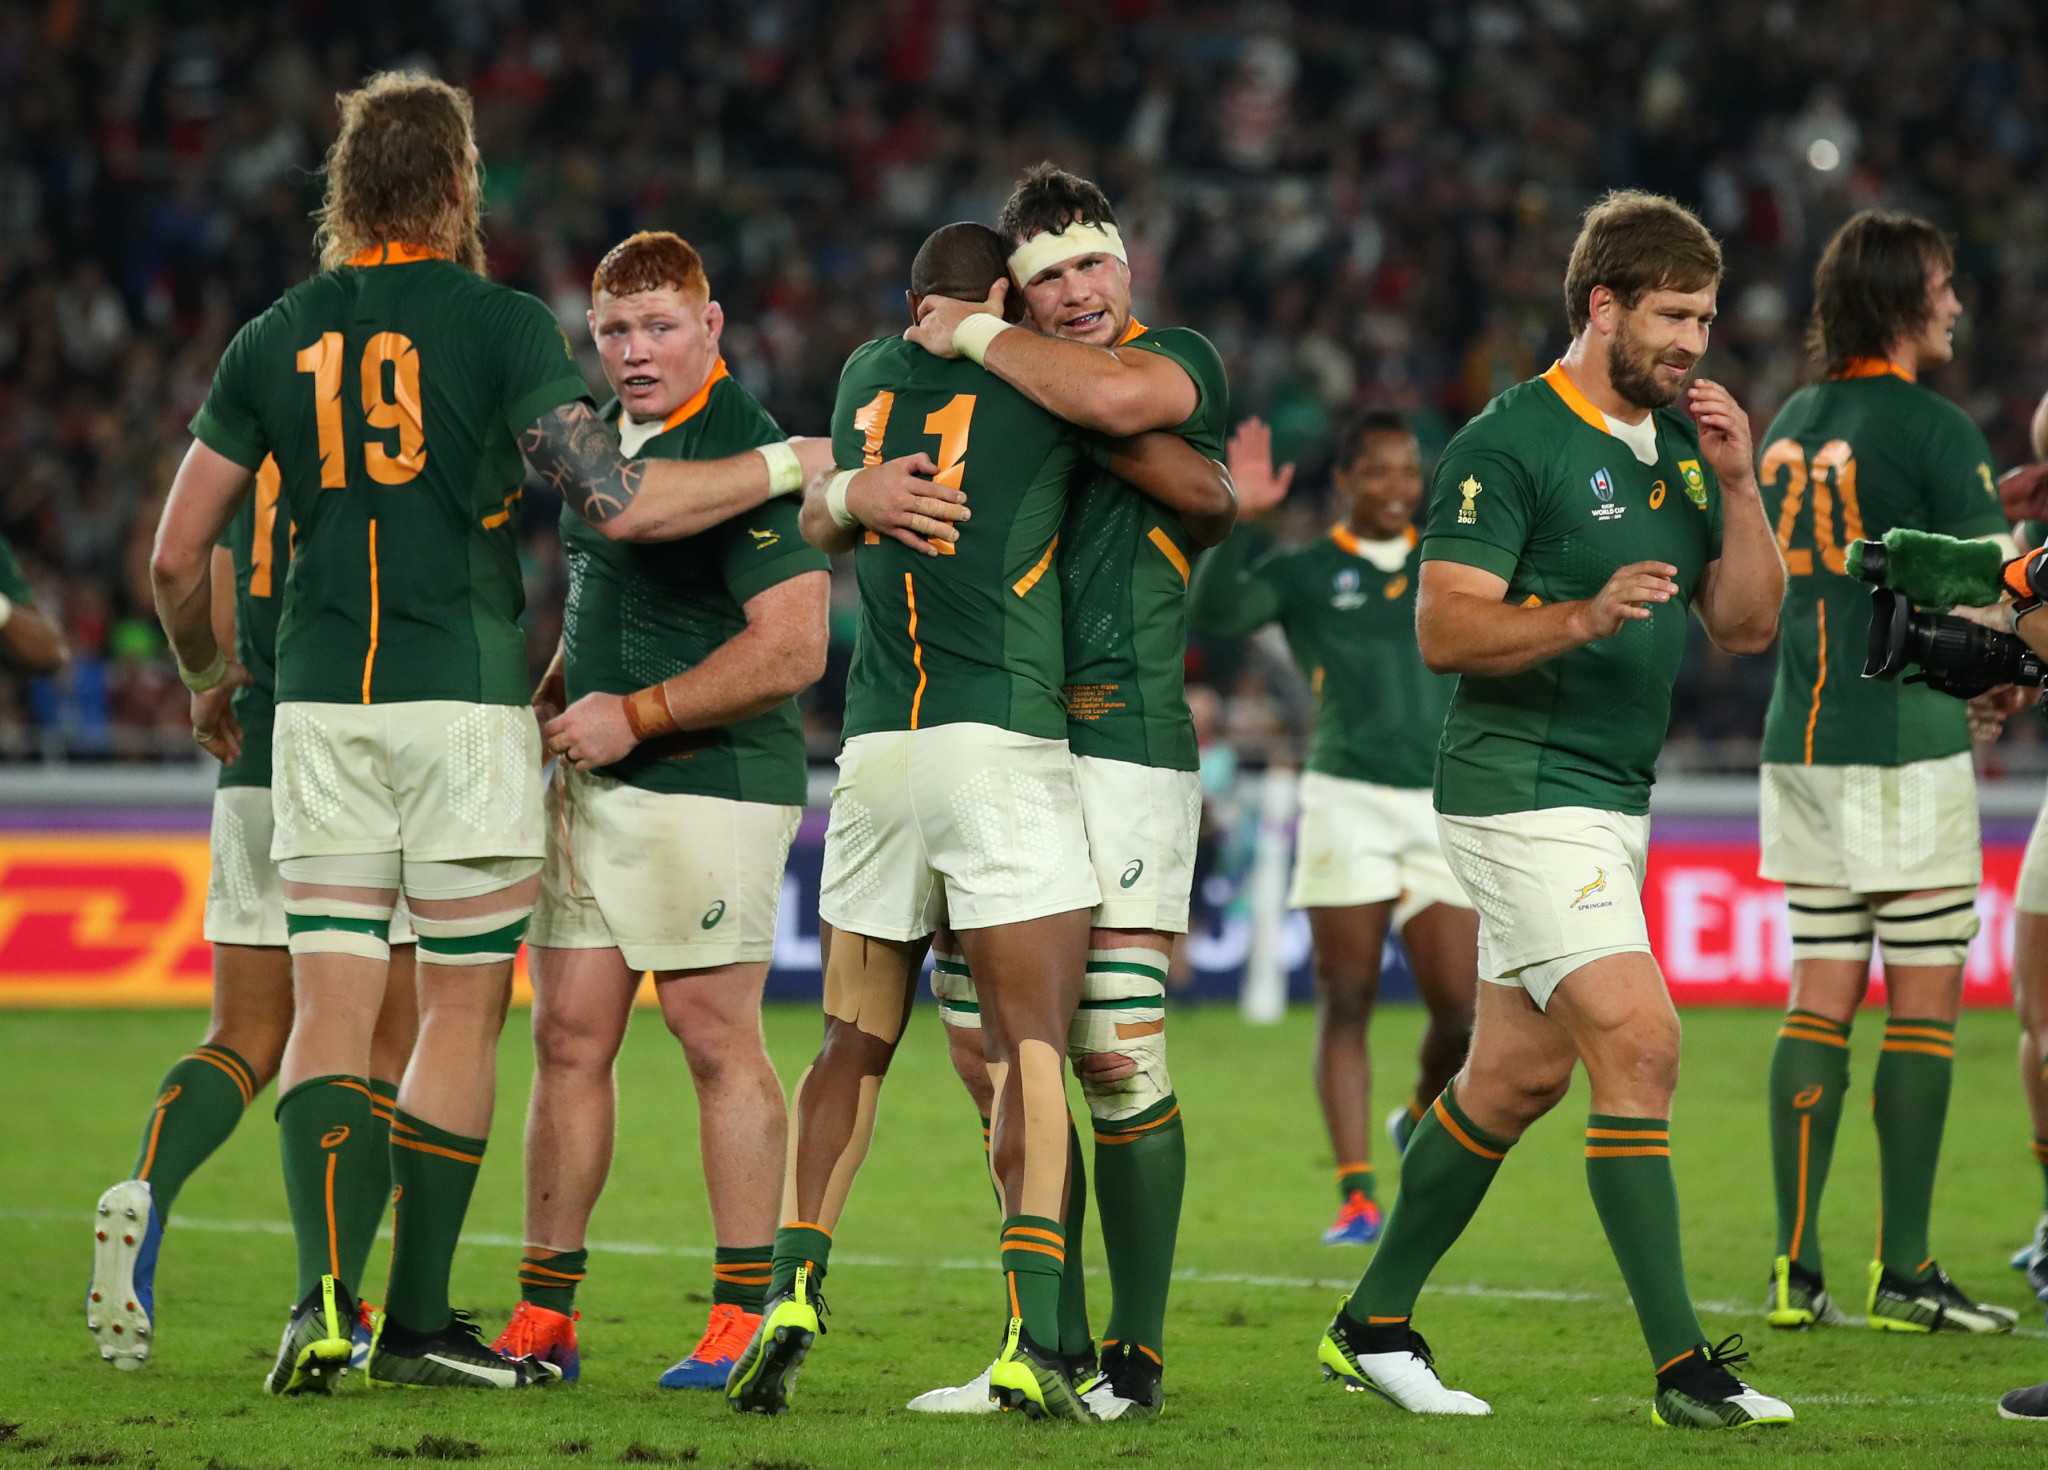 South Africa celebrated at the final whistle ©Getty Images